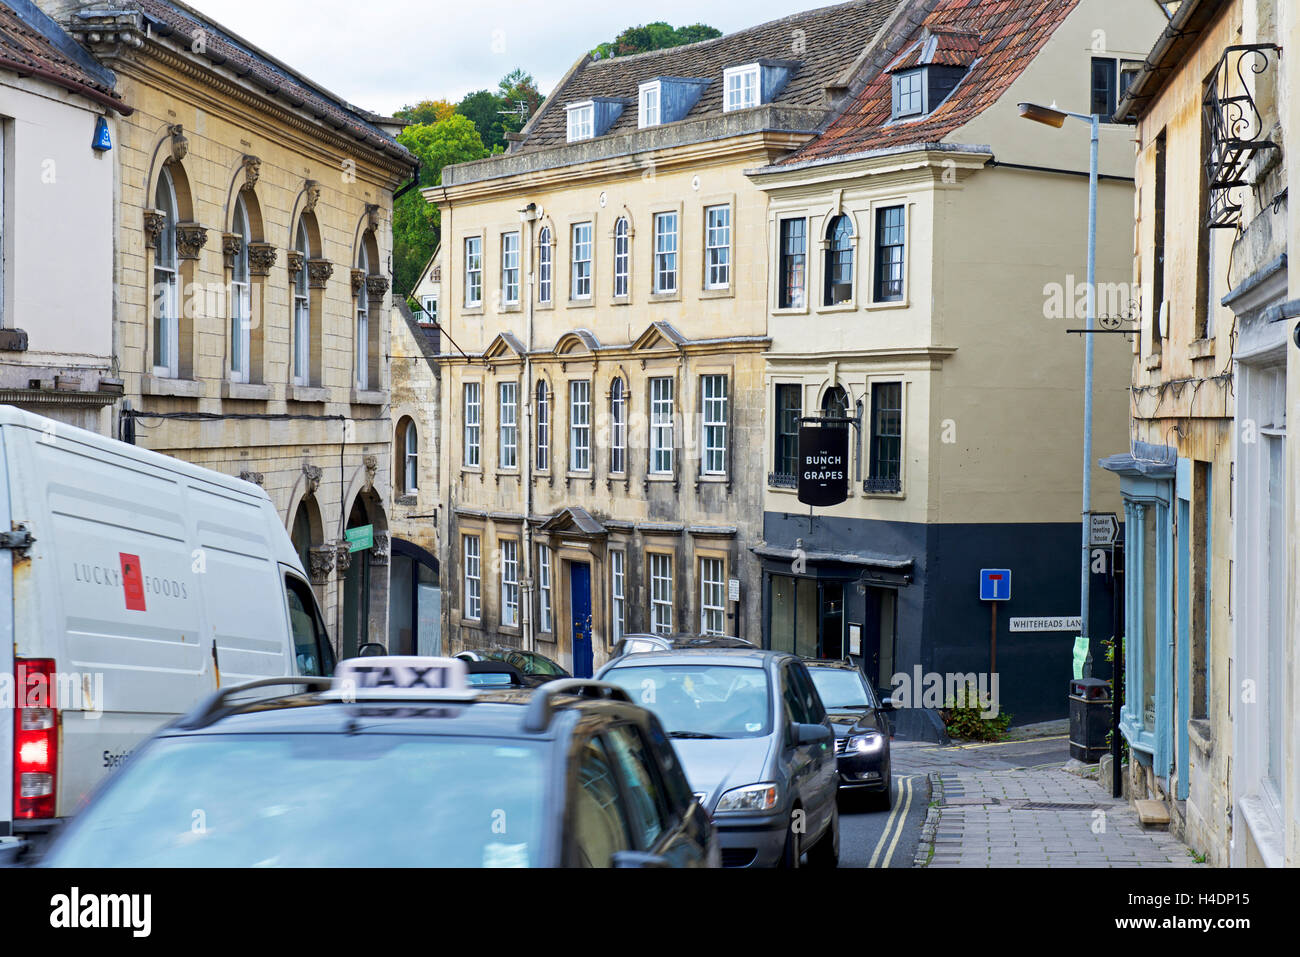 Traffic congestion in Bradford-on-Avon, Wiltshire, England UK - Stock Image